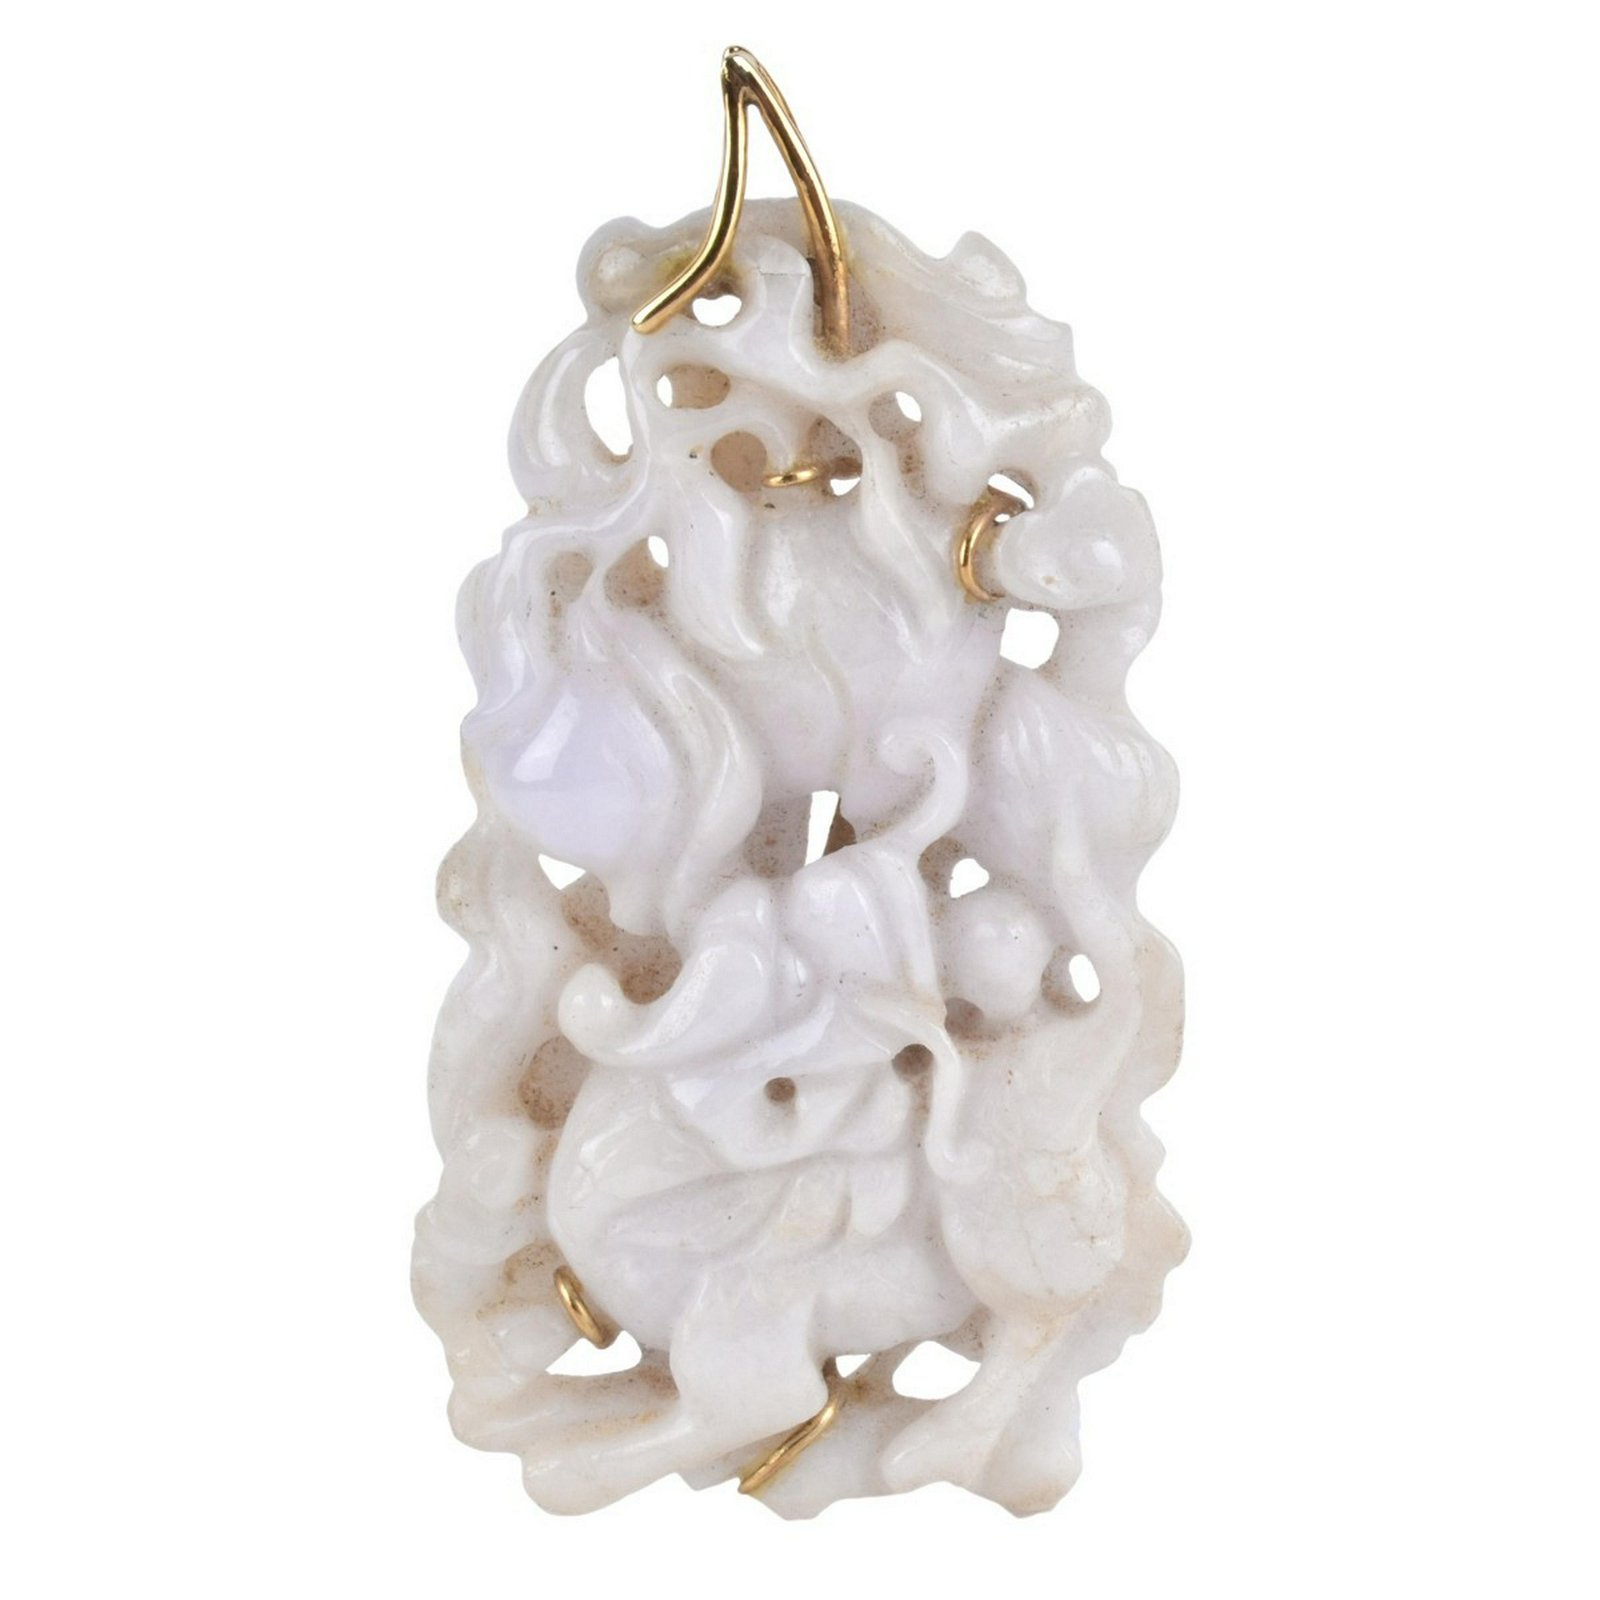 Chinese Carved White Jade and 14K Pendant